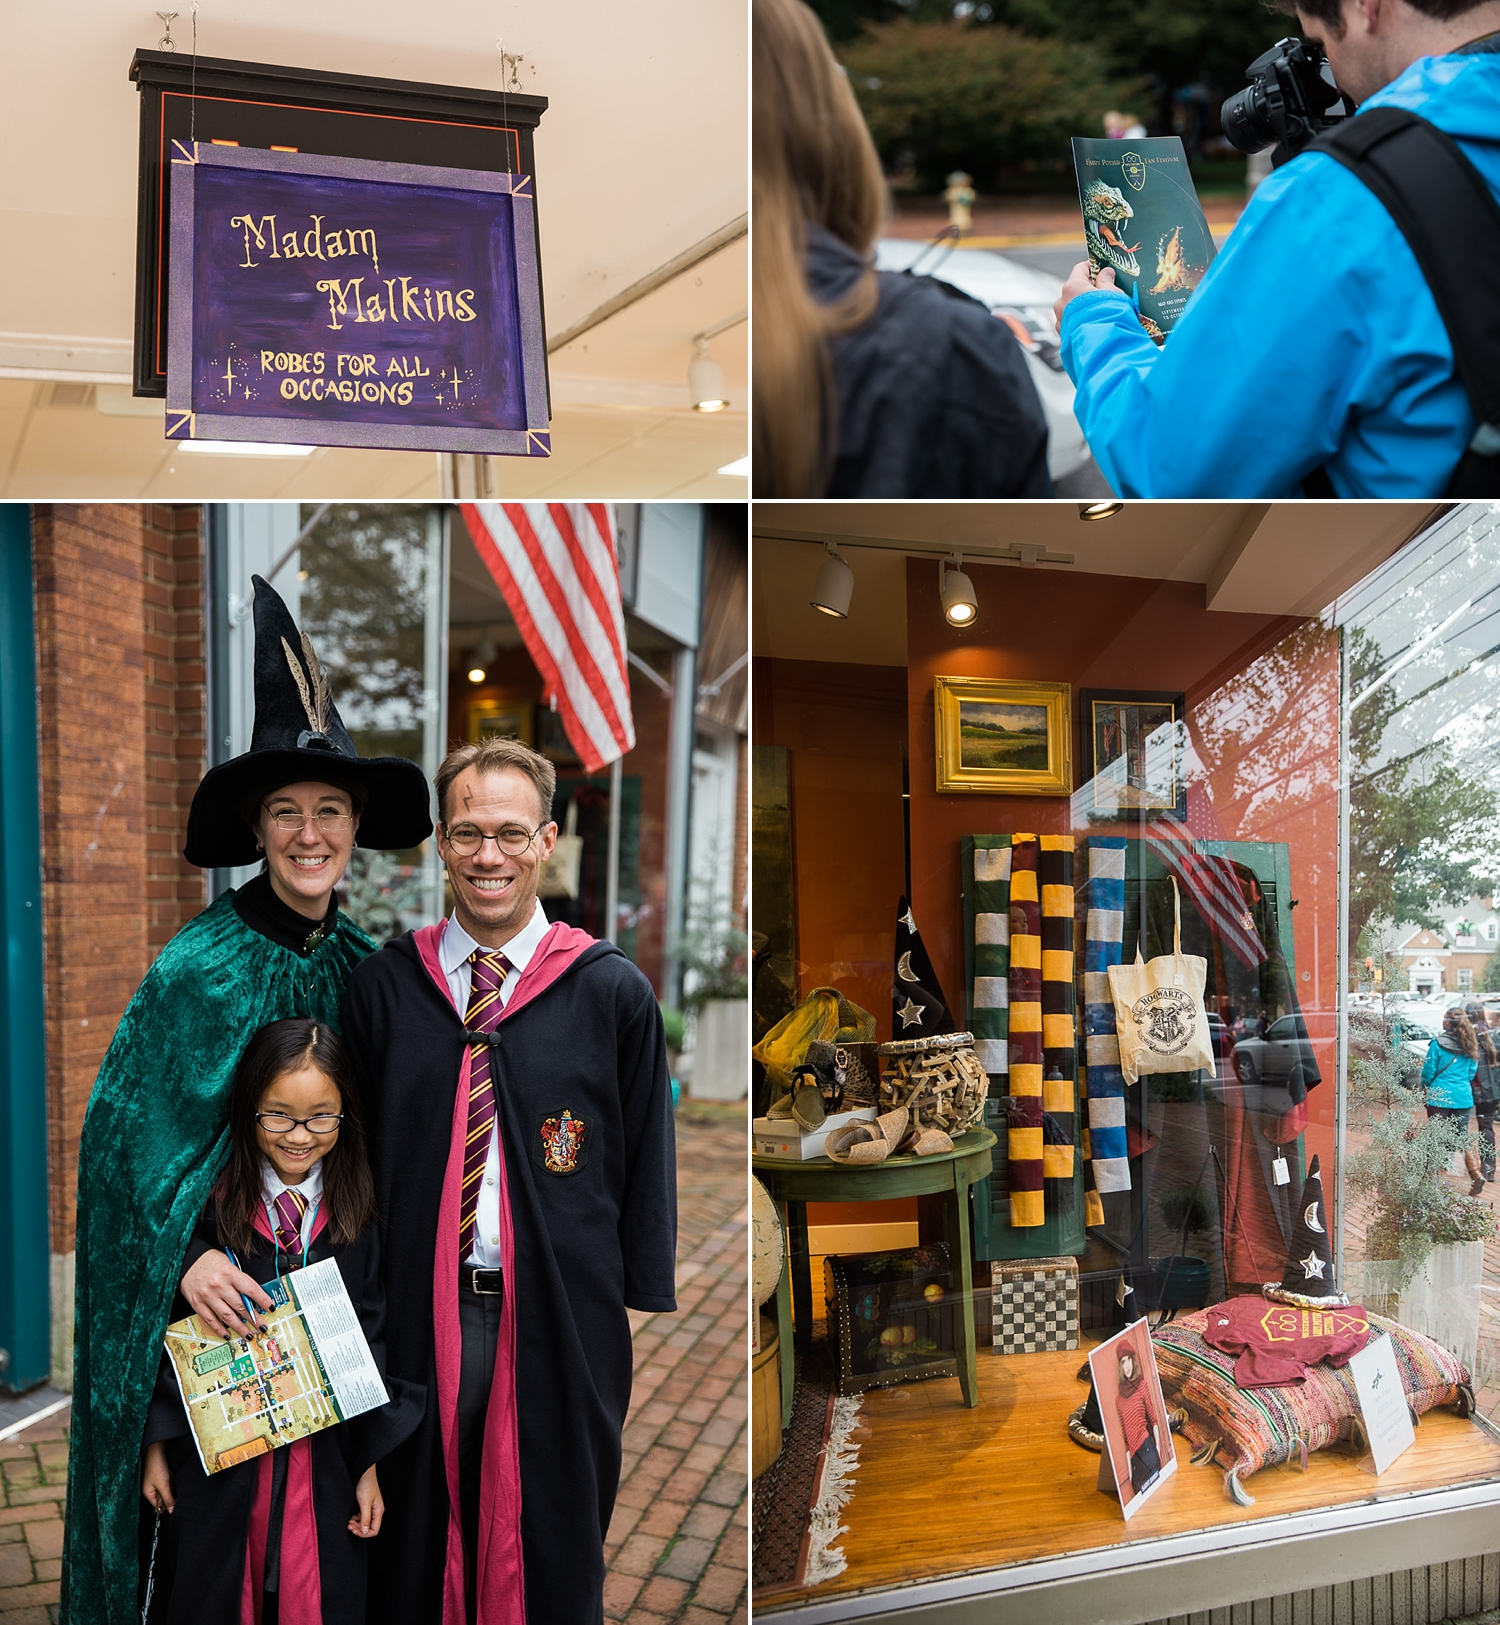 The Harry Potter Festival in Chestertown, Maryland